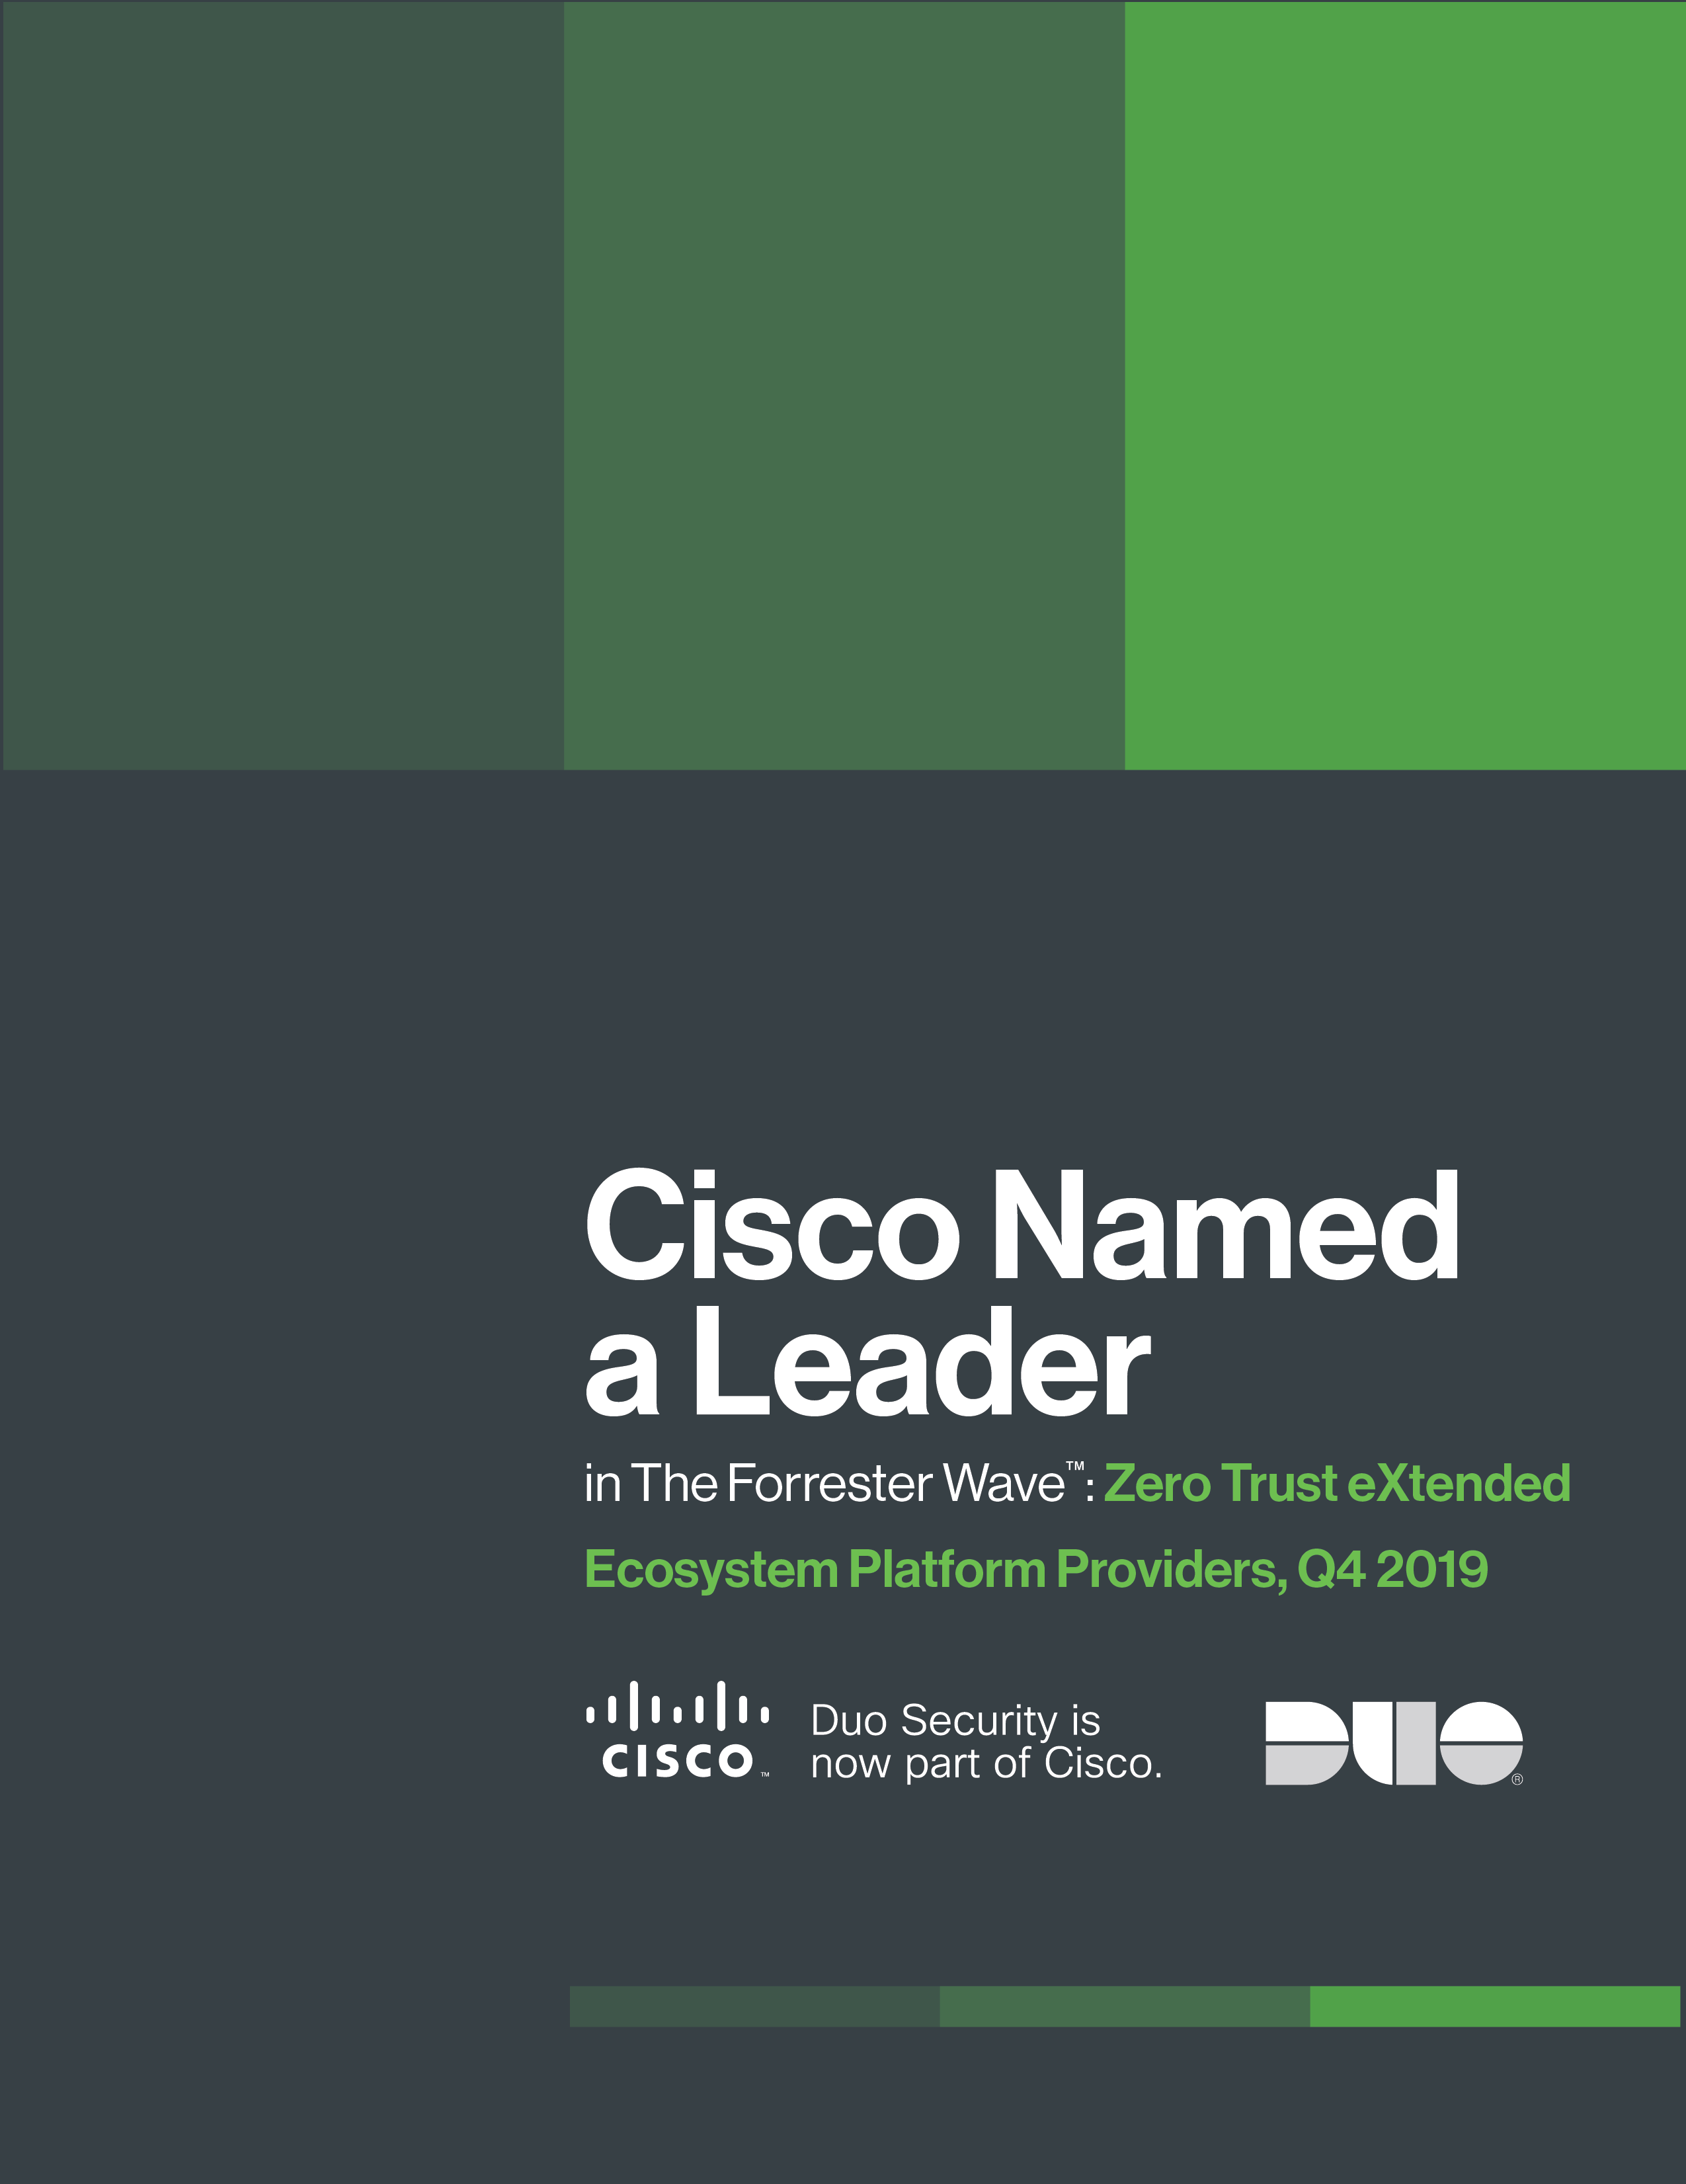 Cover of Cisco Named a Leader in The Forrester Wave™: Zero Trust eXtended Ecosystem Platform Providers, Q4 2019 Report eBook